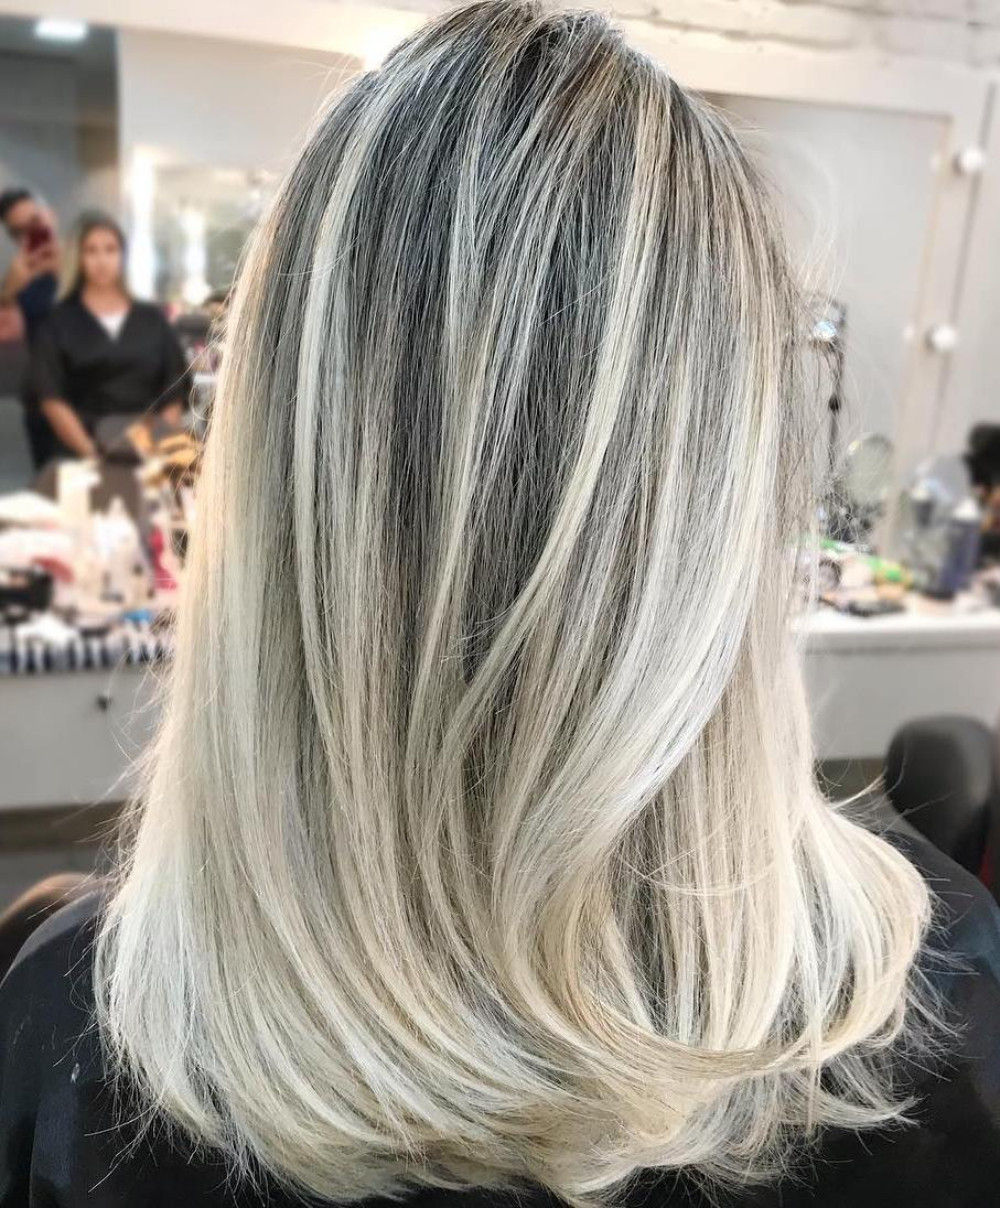 Cool Blonde Balayage with Silver Highlights